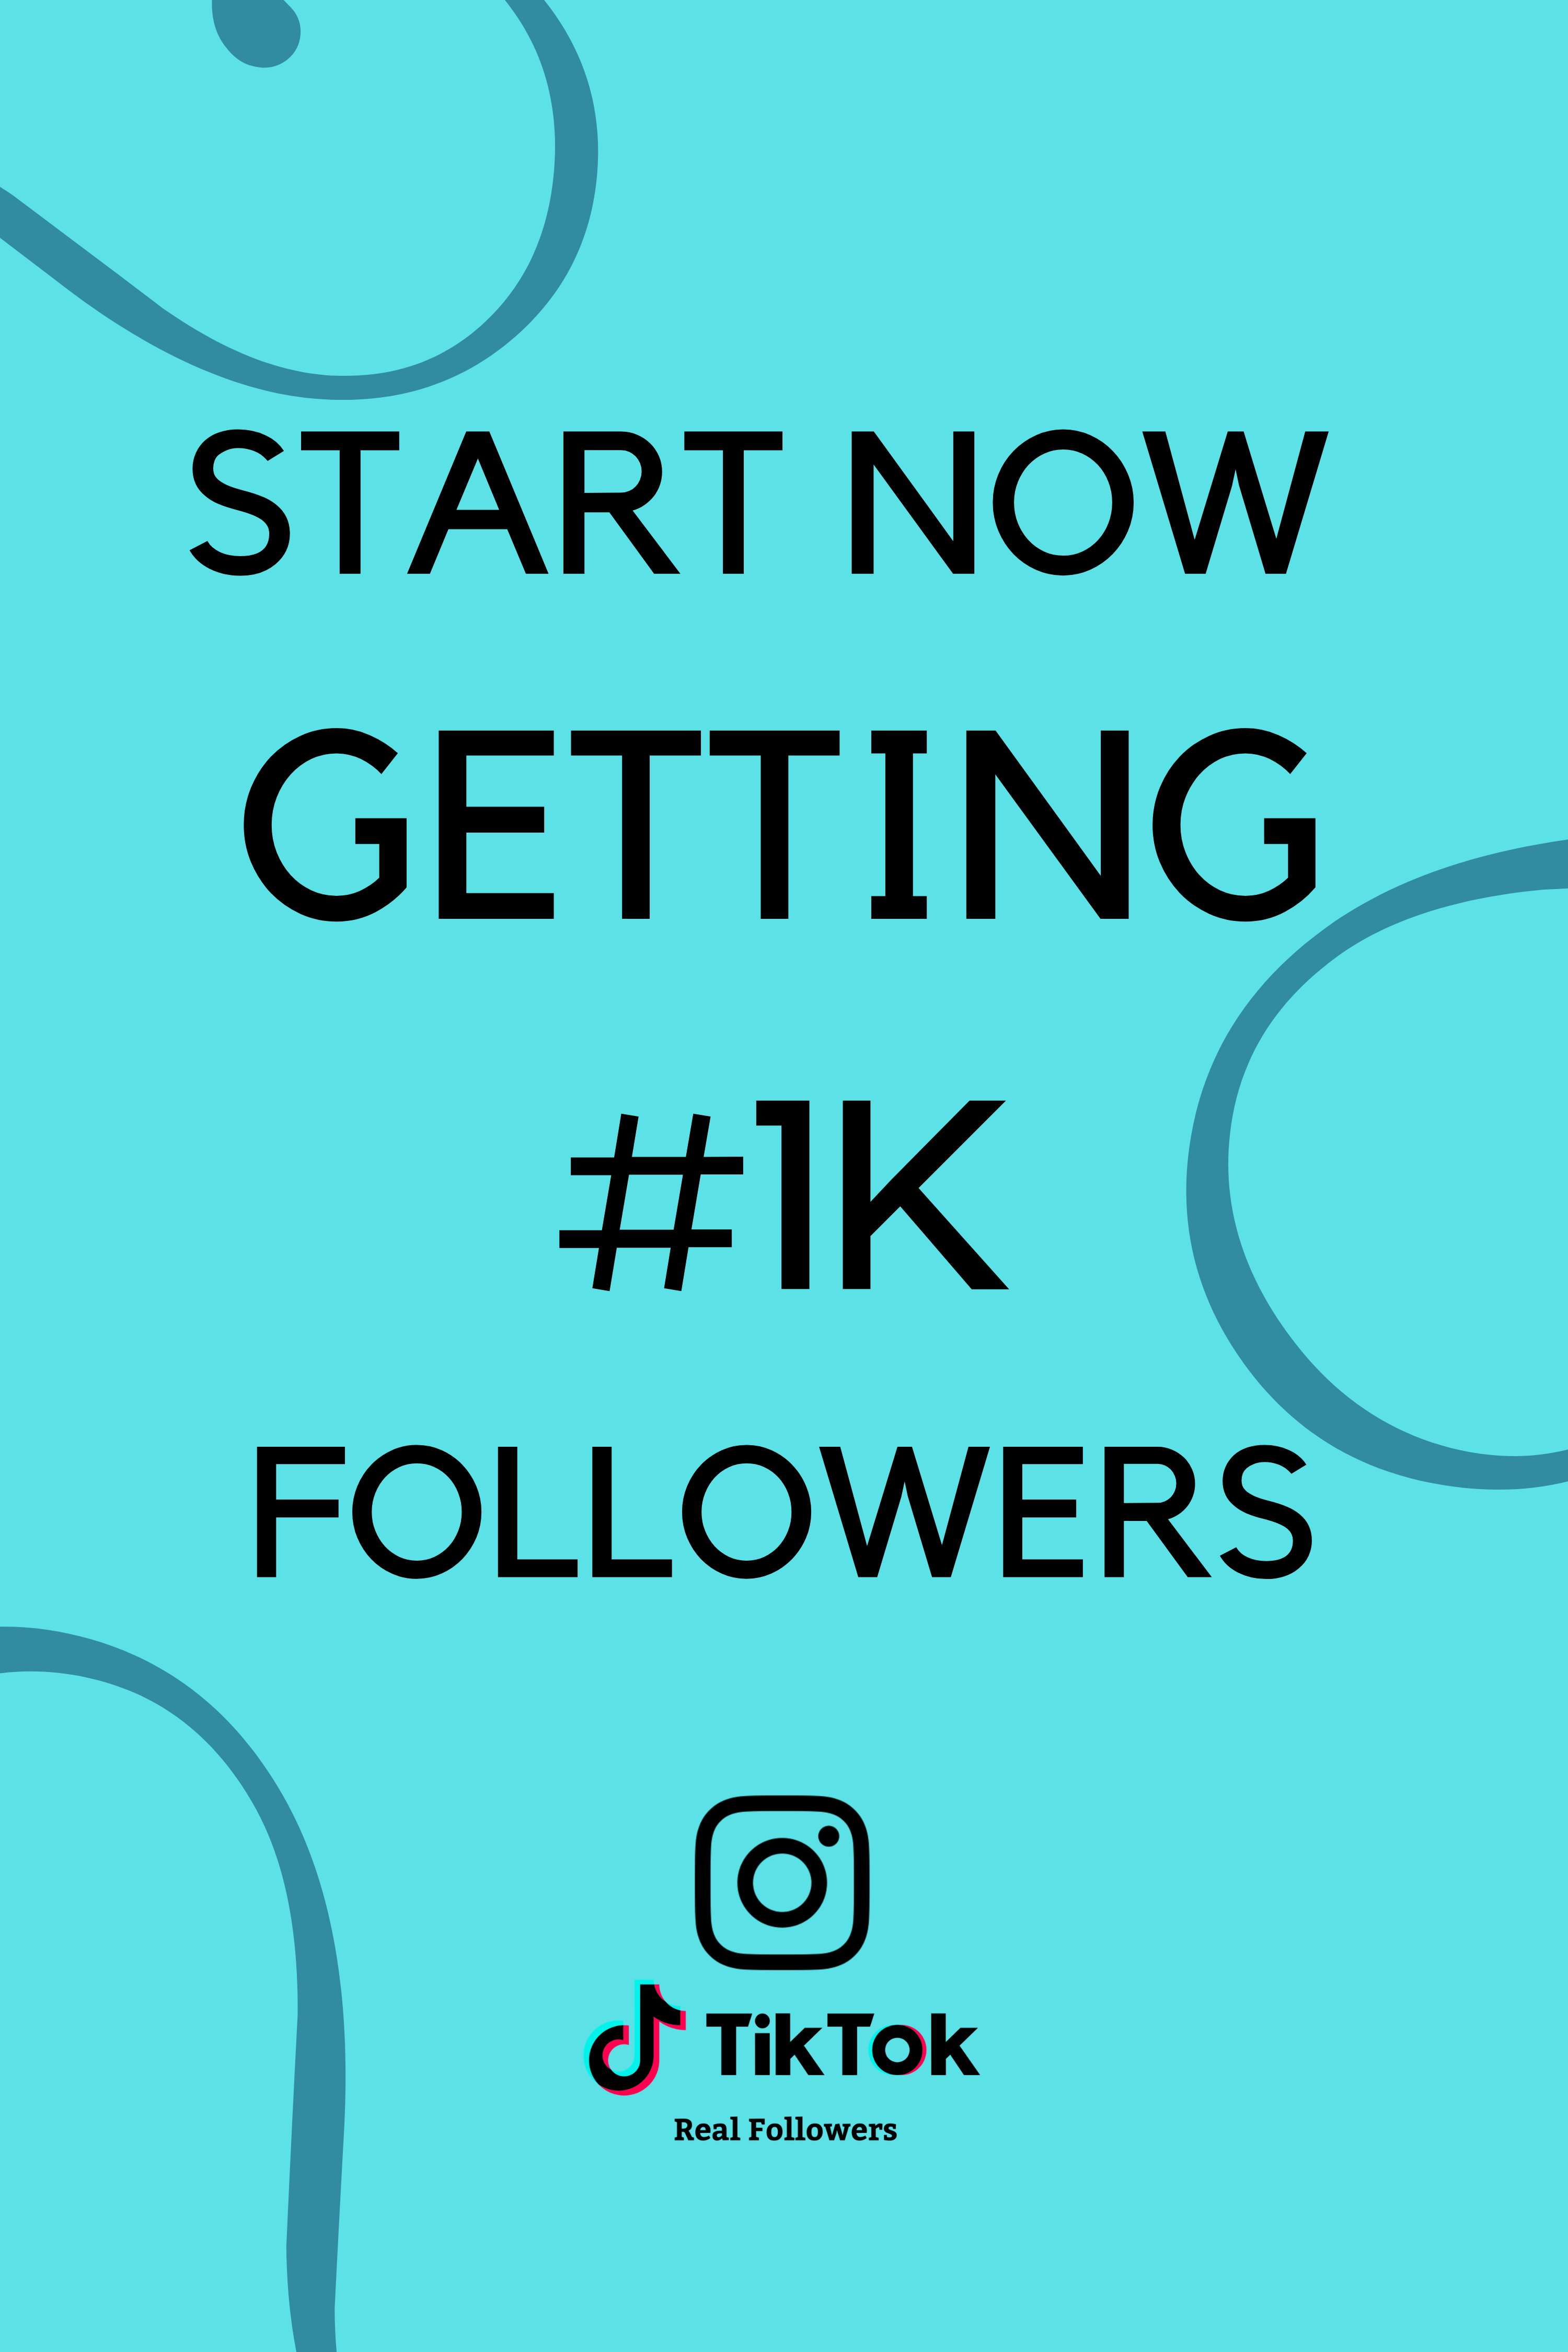 Easy Way To Gain Instagram Tik Tok Followers In 2020 How To Get Followers Blogging Advice Get More Followers